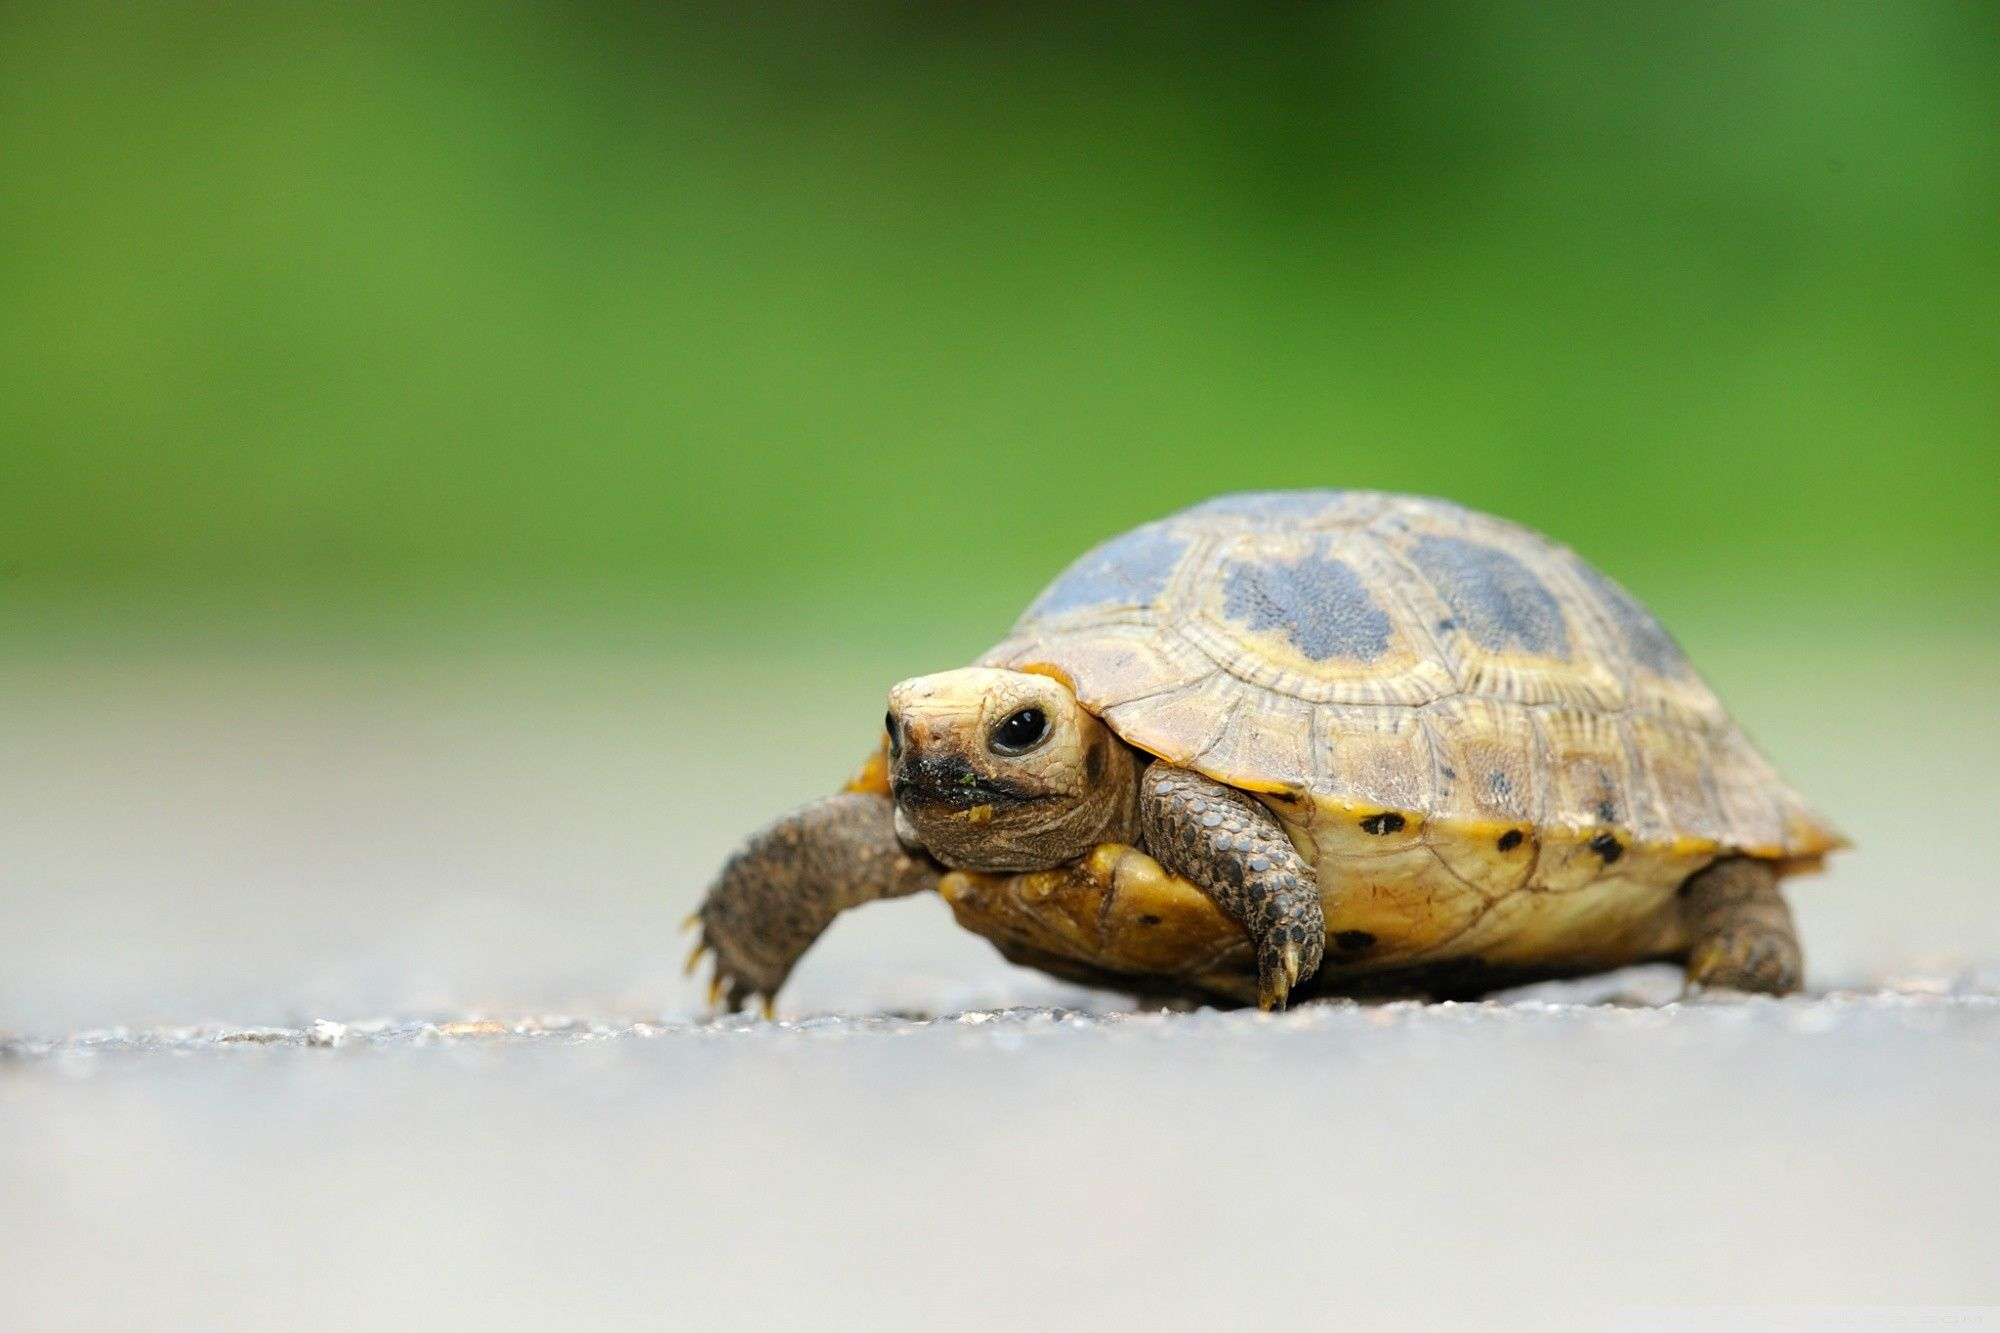 turtle wallpapers hd free